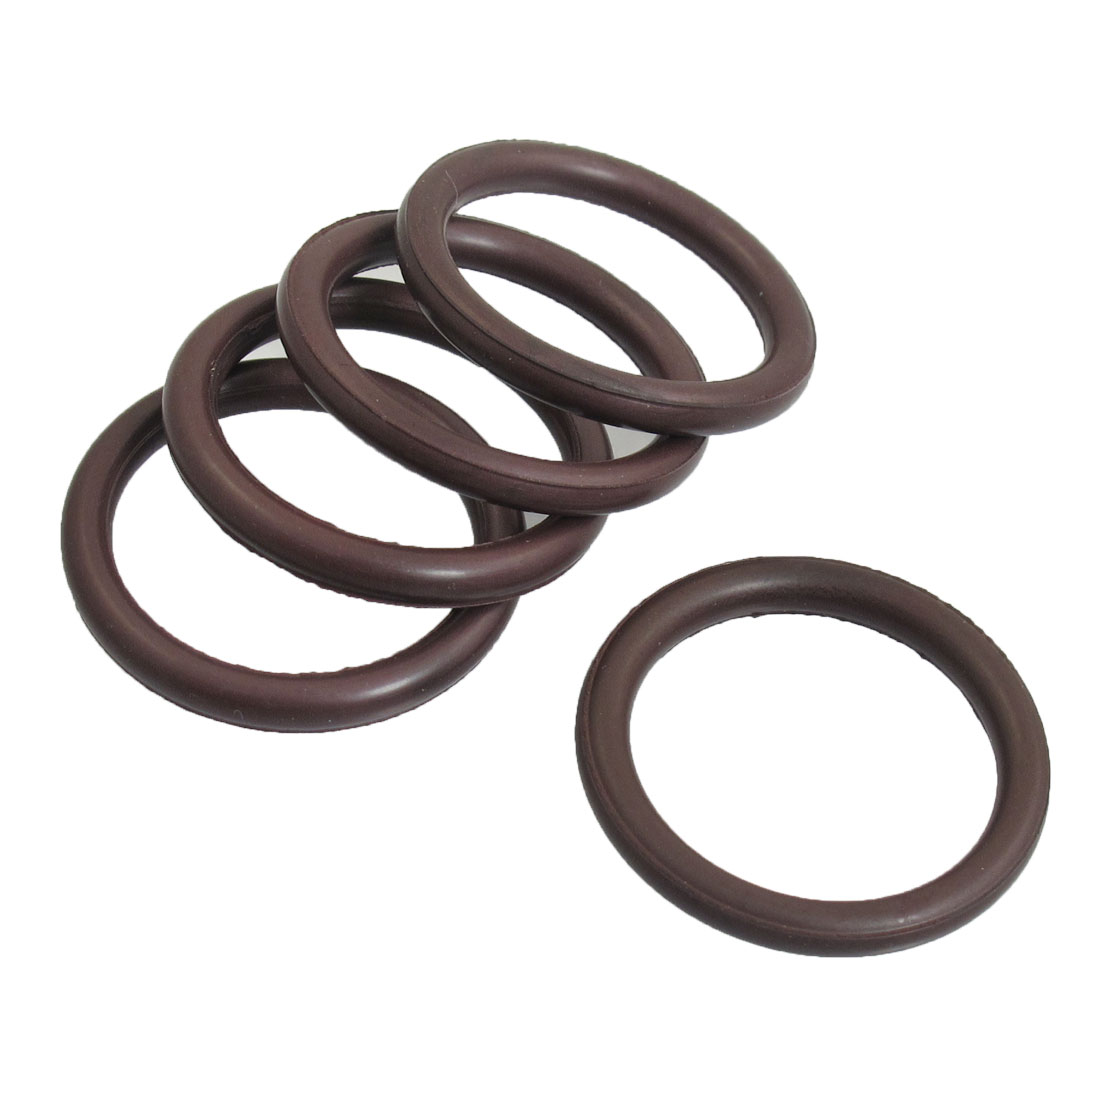 5 Pcs Brown Rubber 30mm x 24mm x 3mm O Ring Oil Seal Gaskets